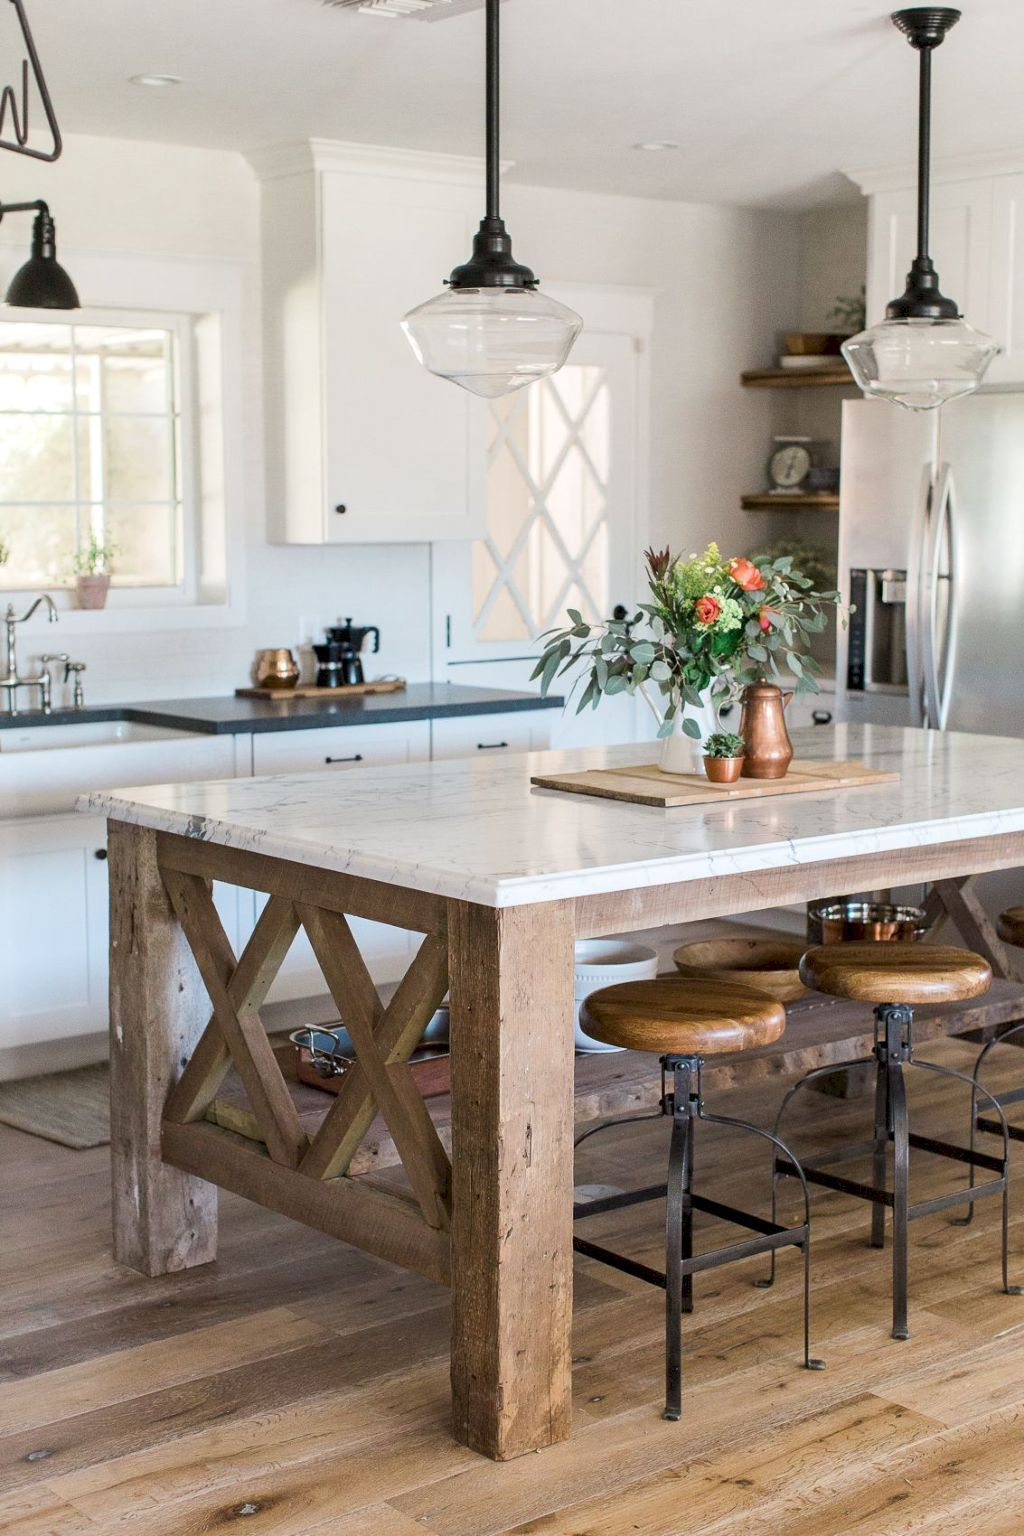 44 awesome rustic kitchen island design ideas custom kitchen island farmhouse style kitchen on kitchen ideas with island id=99413